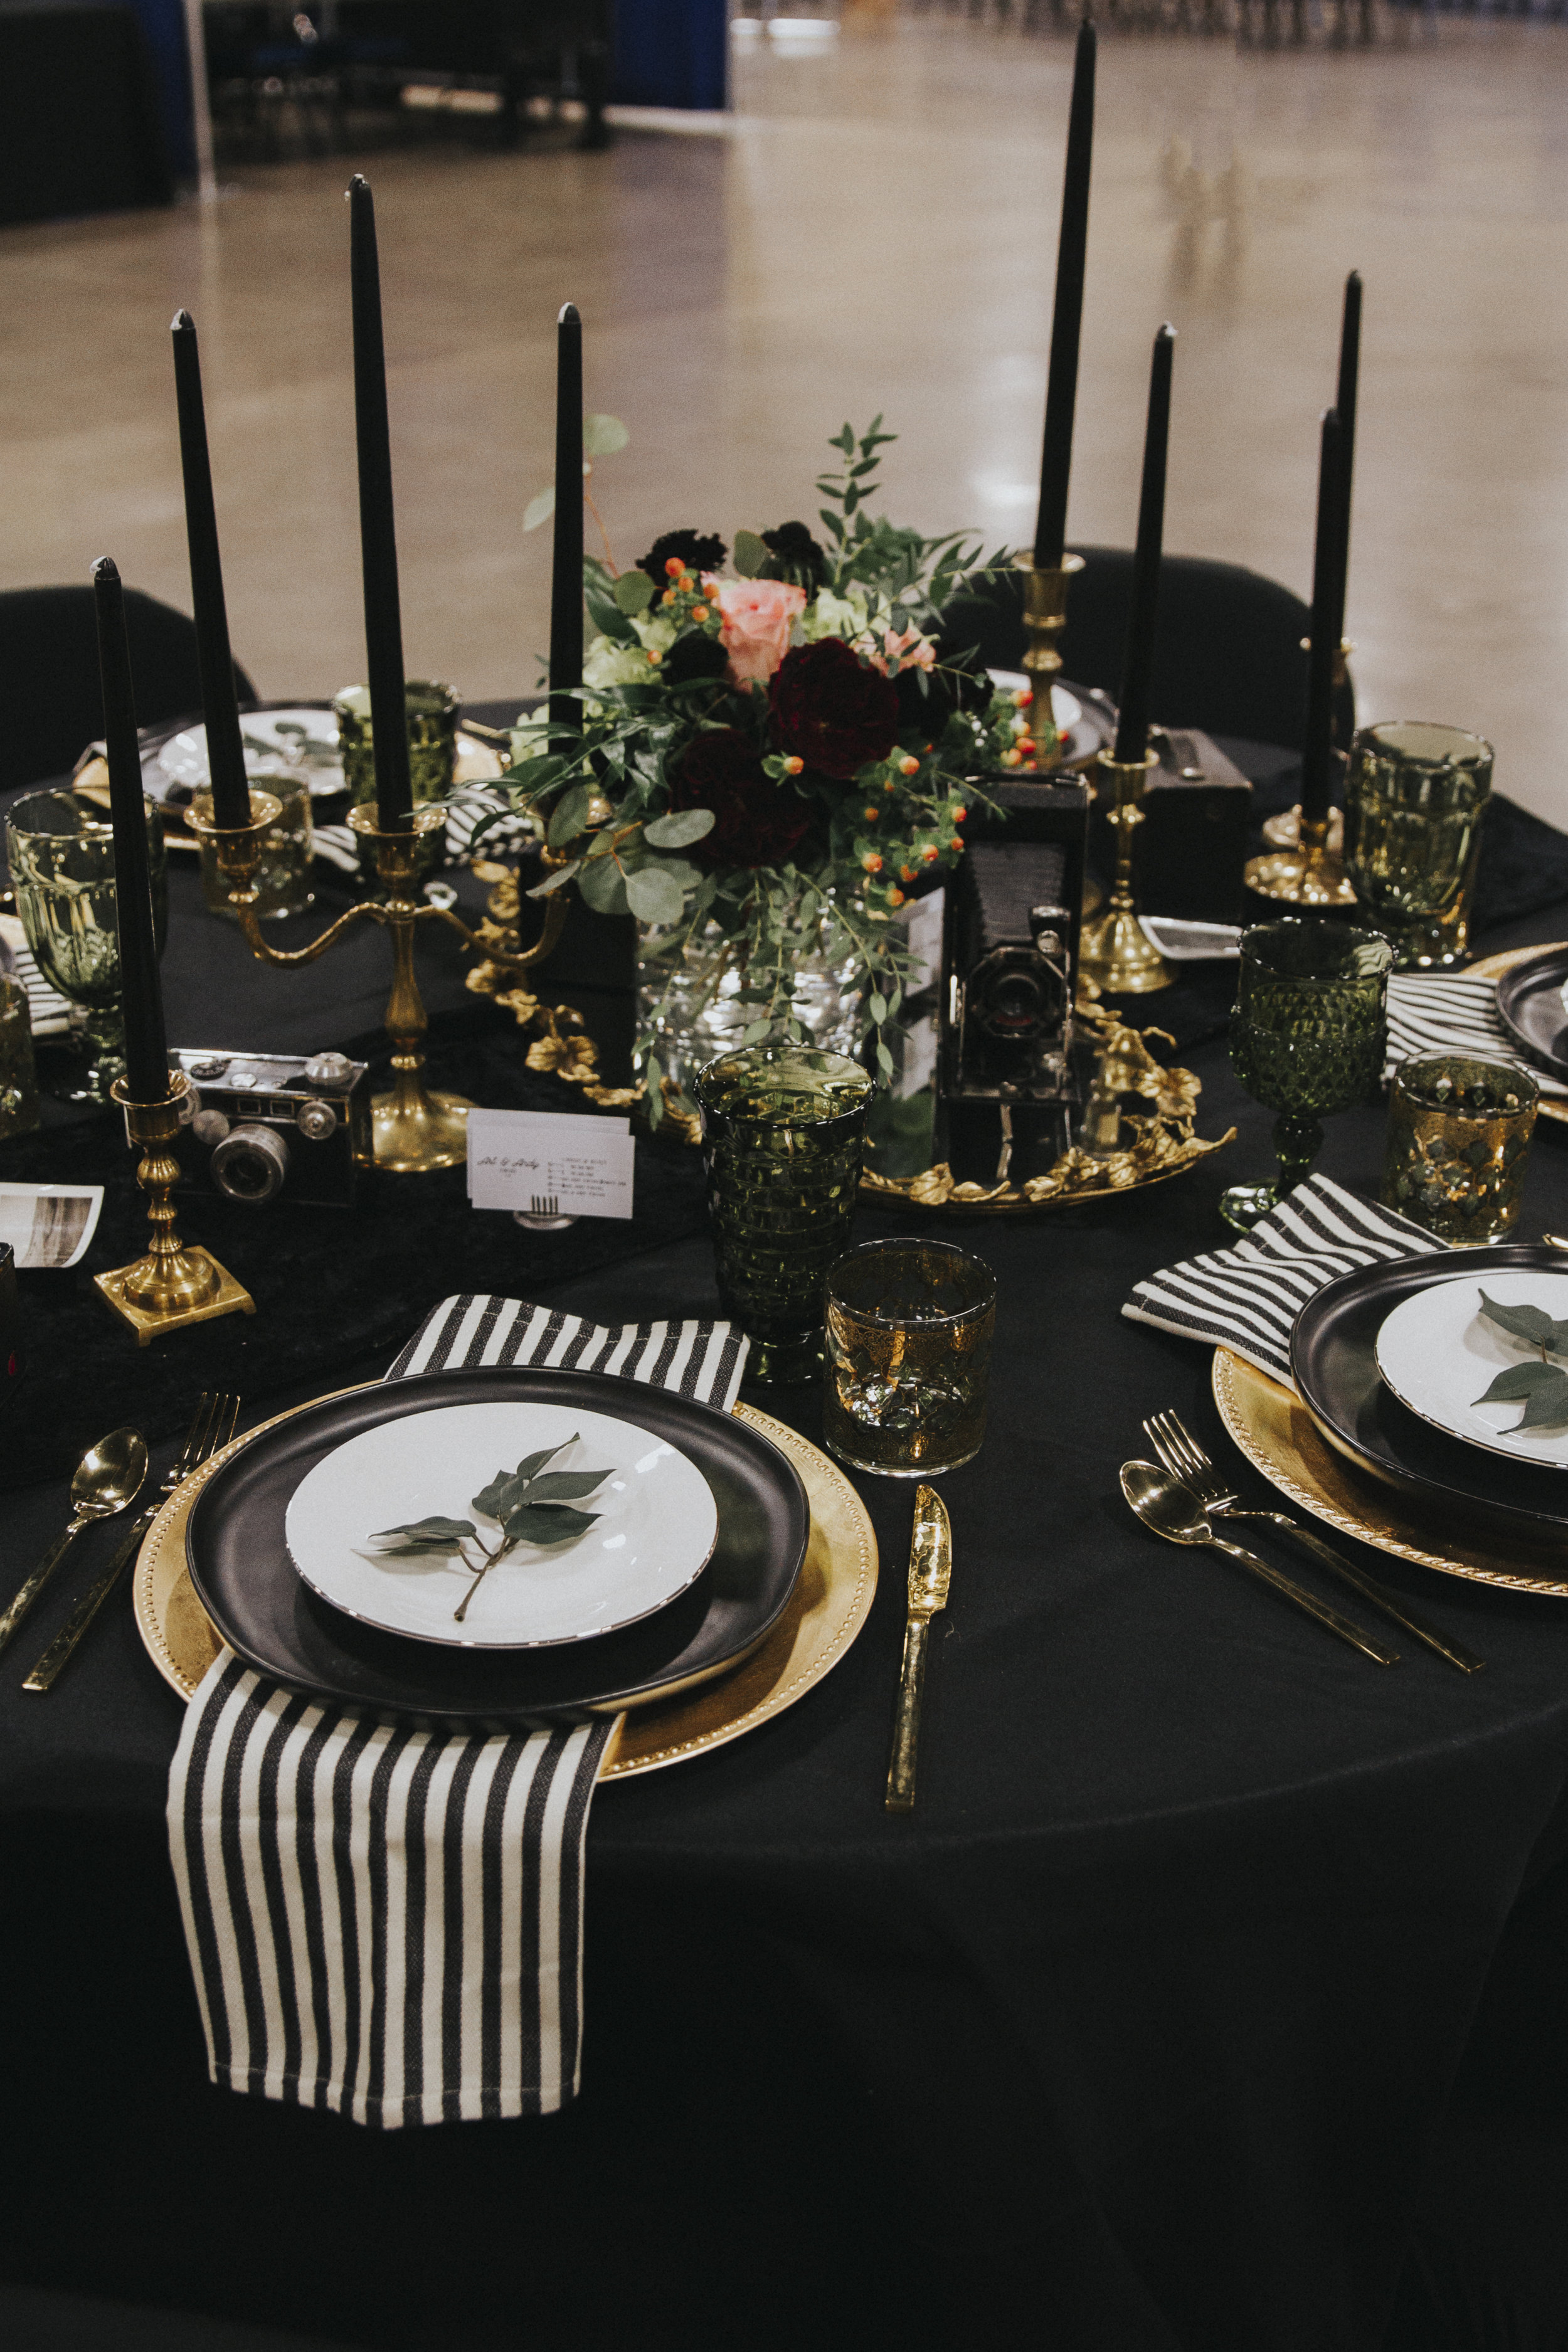 Moody - dark colors, clean lines, and pops of gold